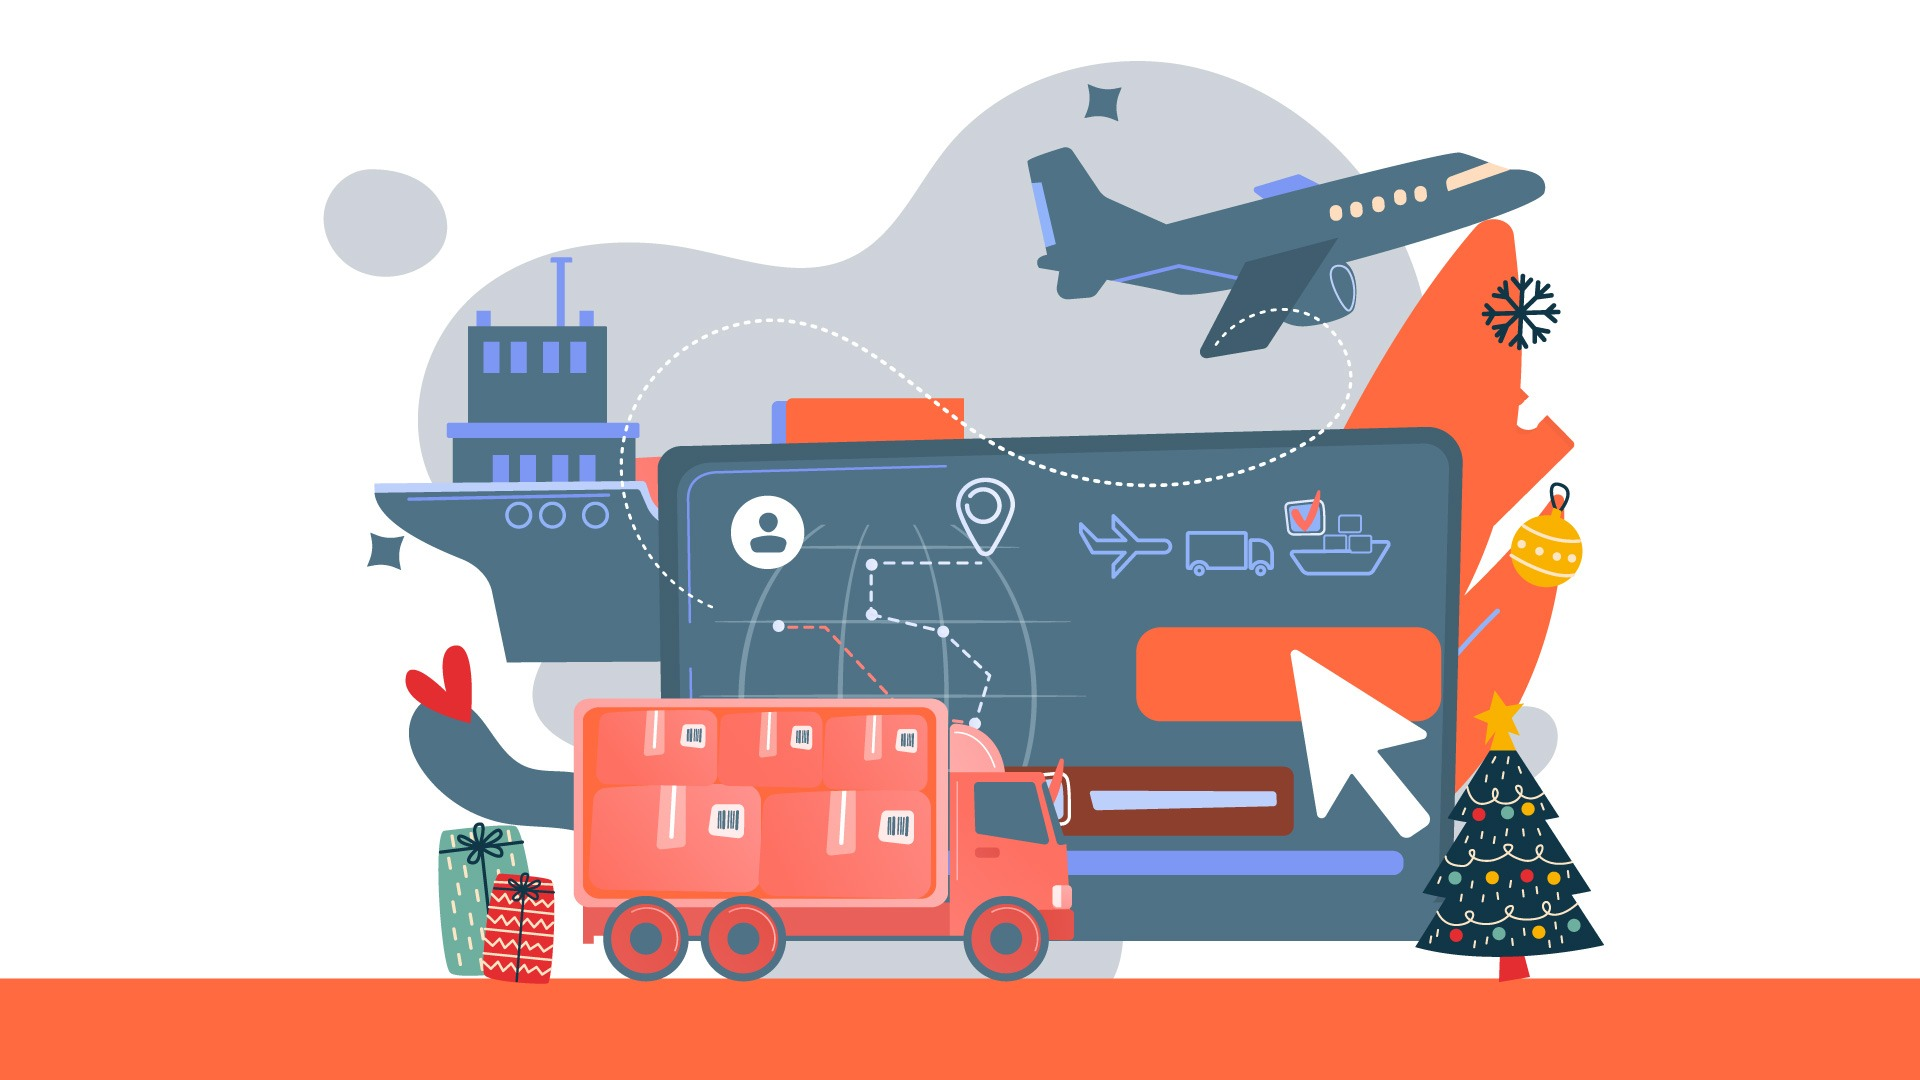 Crisismas & the Chain Pain: How Supply Chain Issues Are Affecting eCommerce